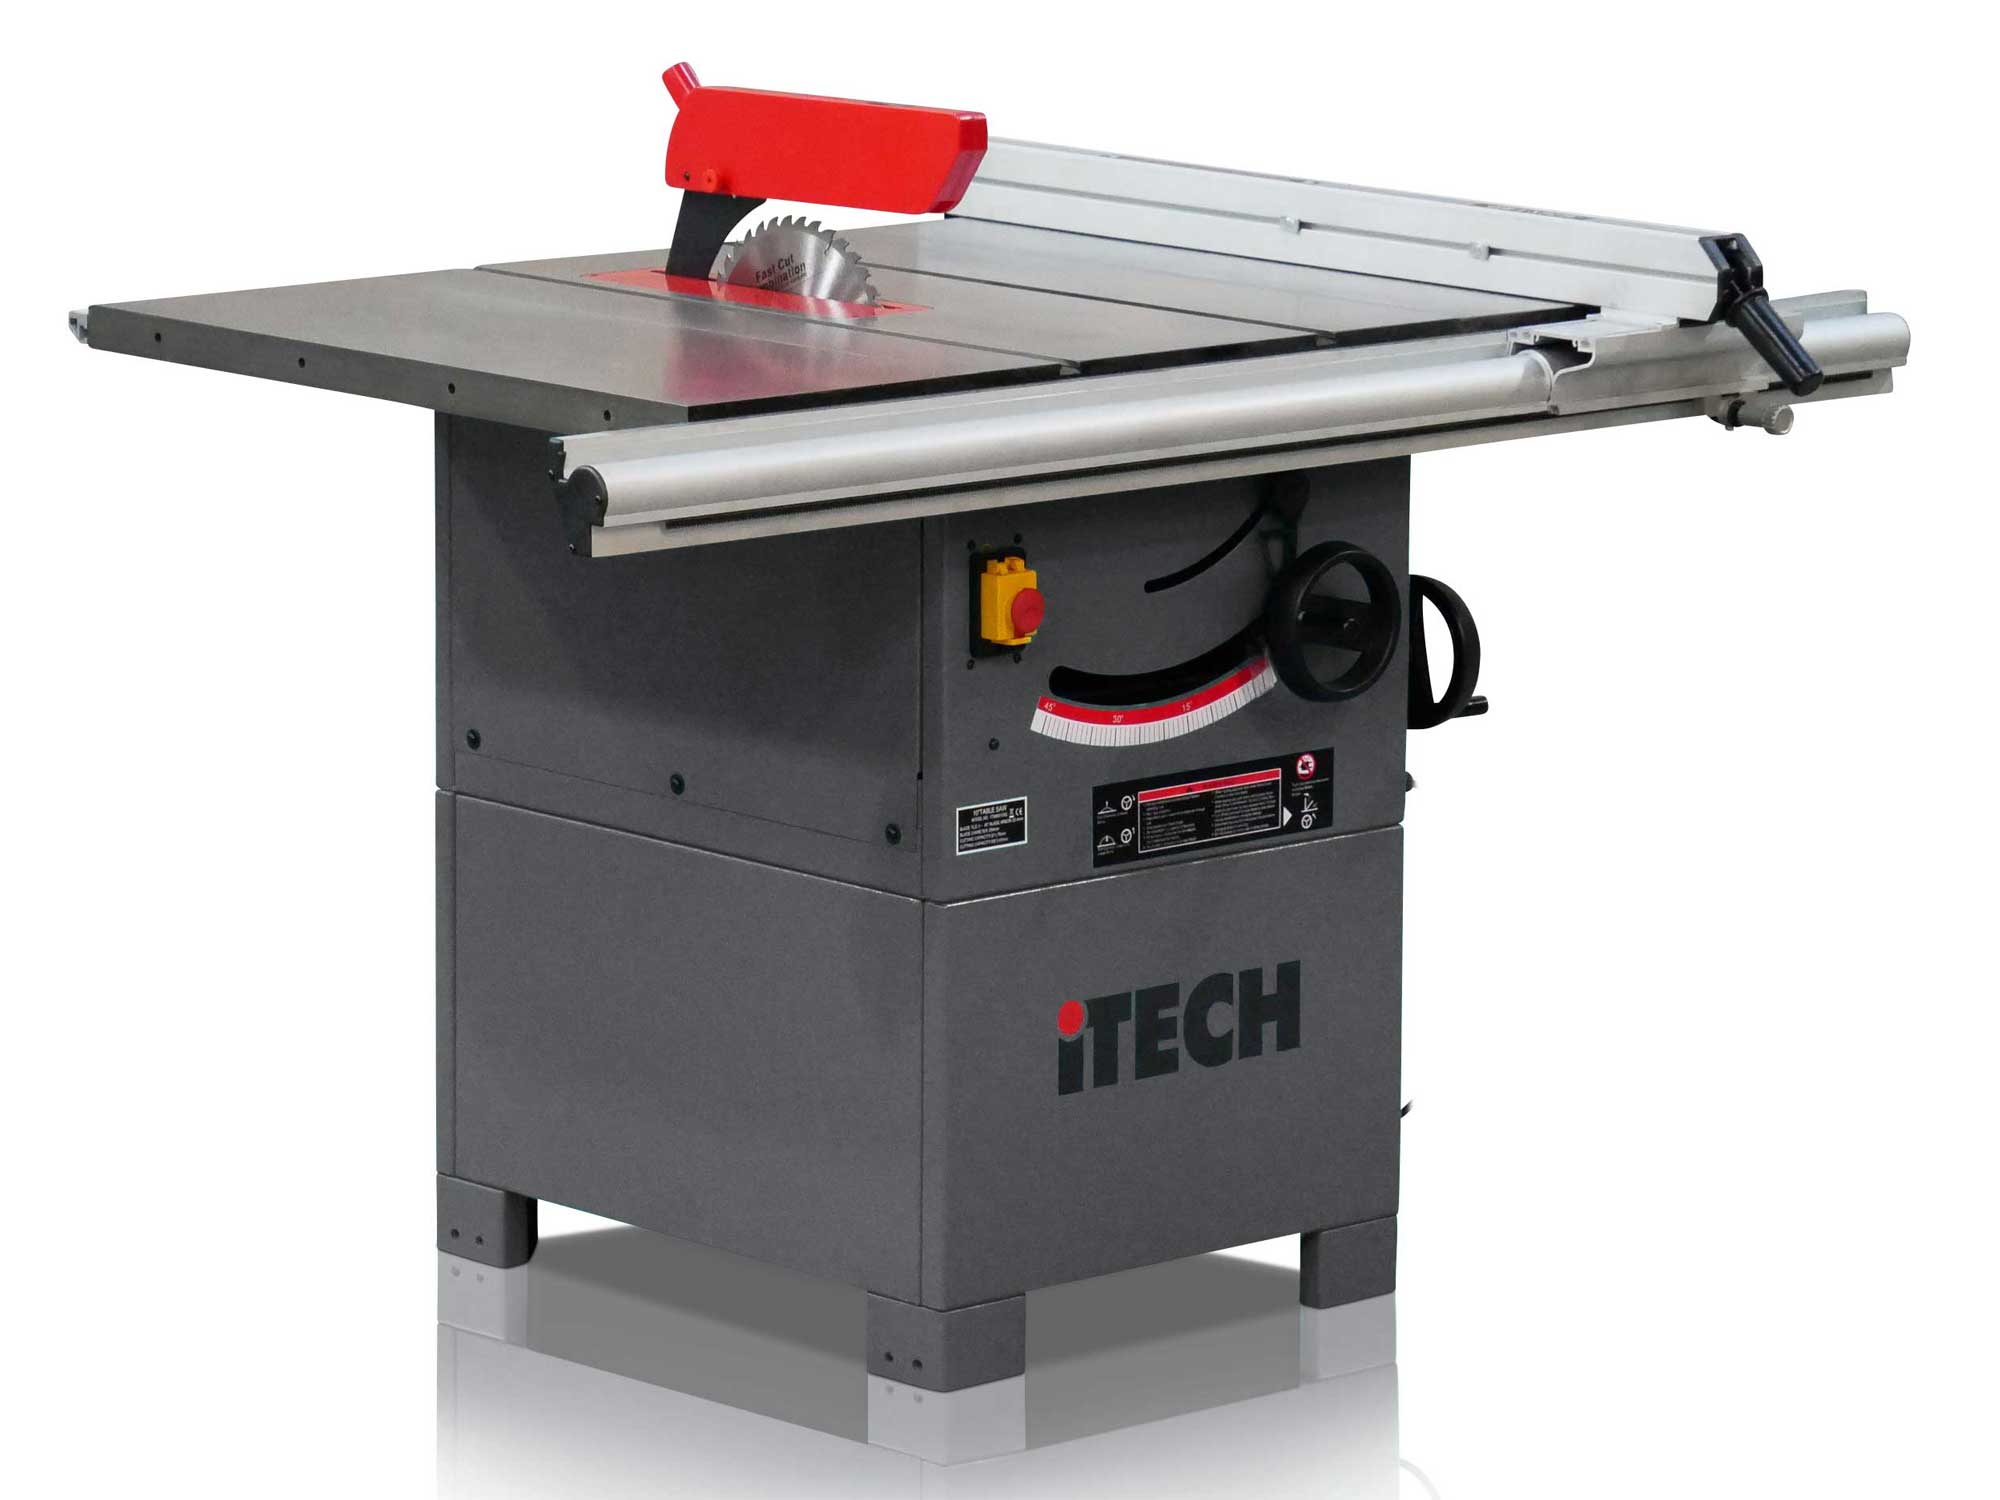 Itech 01332 250mm Cast Iron Table Saw Bench Scott Sargeant Uk